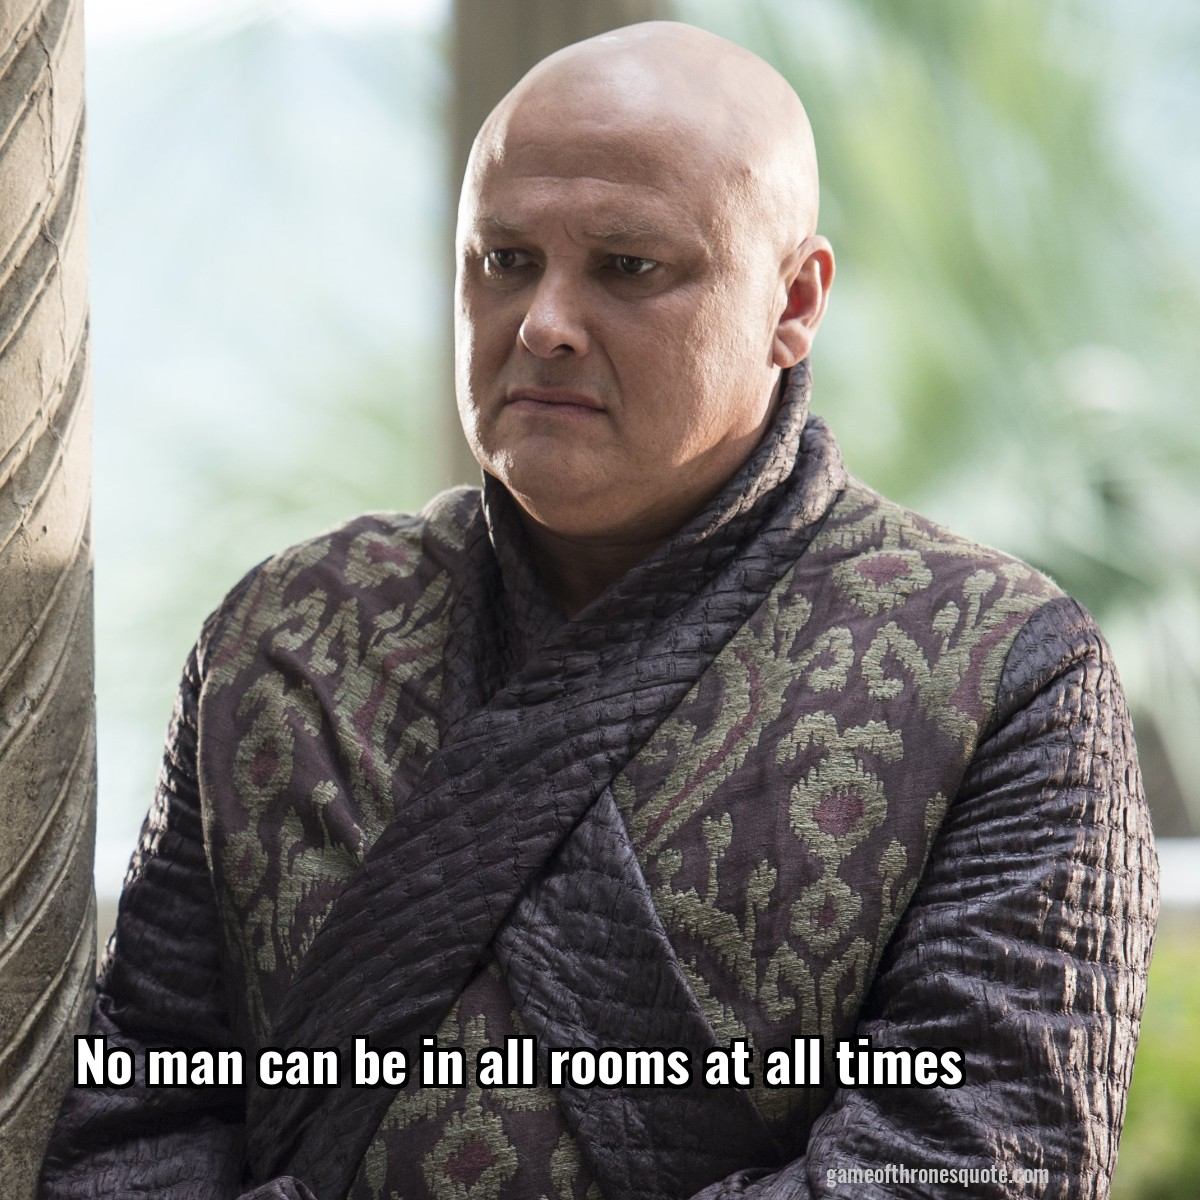 No man can be in all rooms at all times